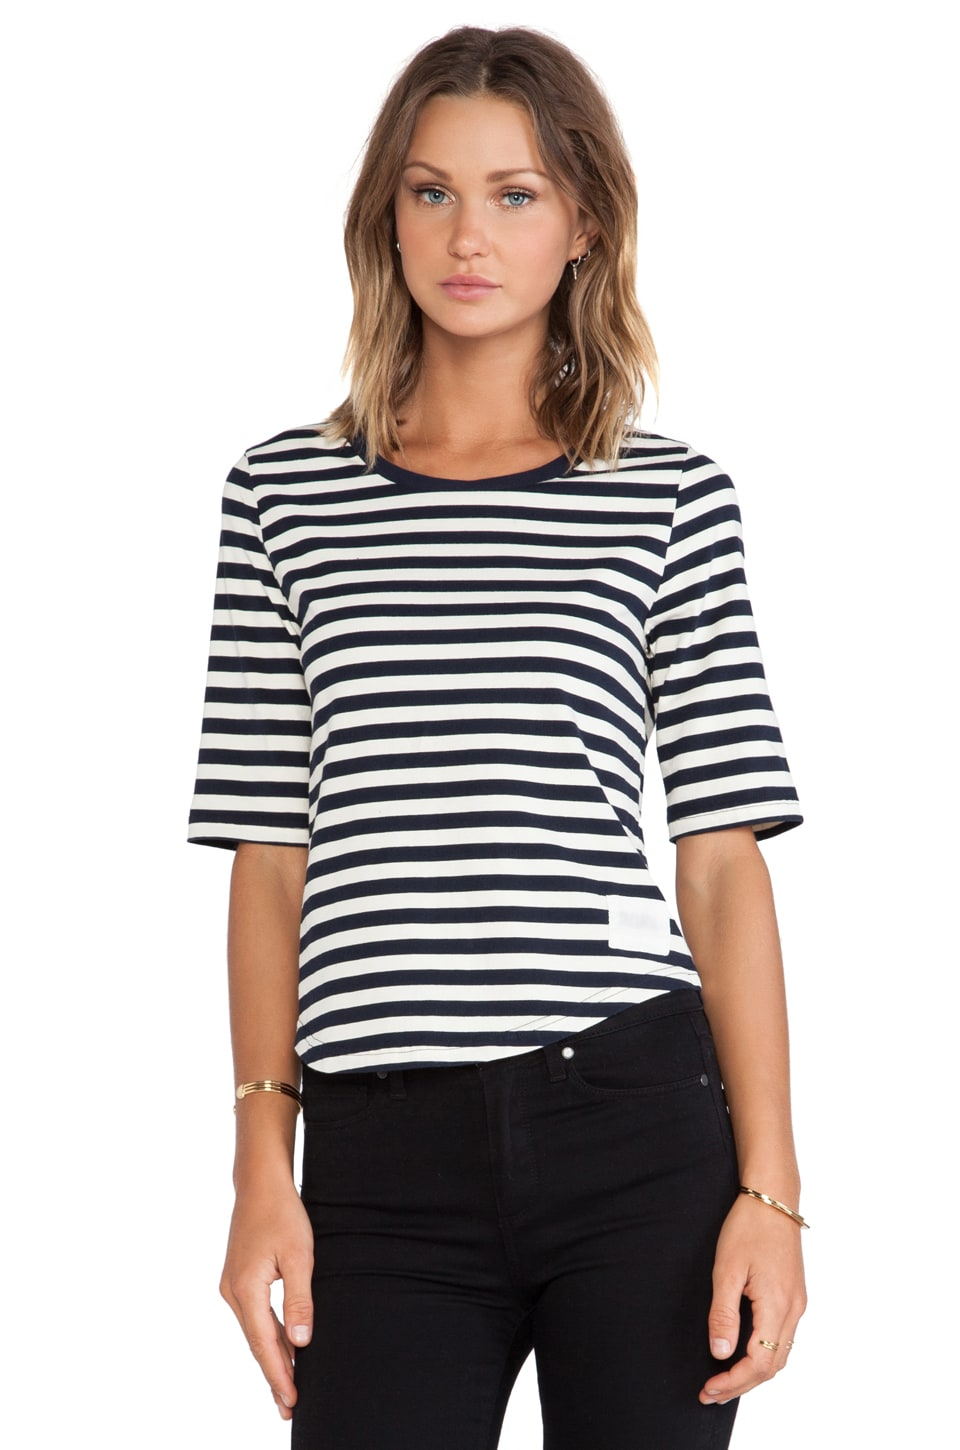 NEUW Rebel Stripe Tee in Navy/White